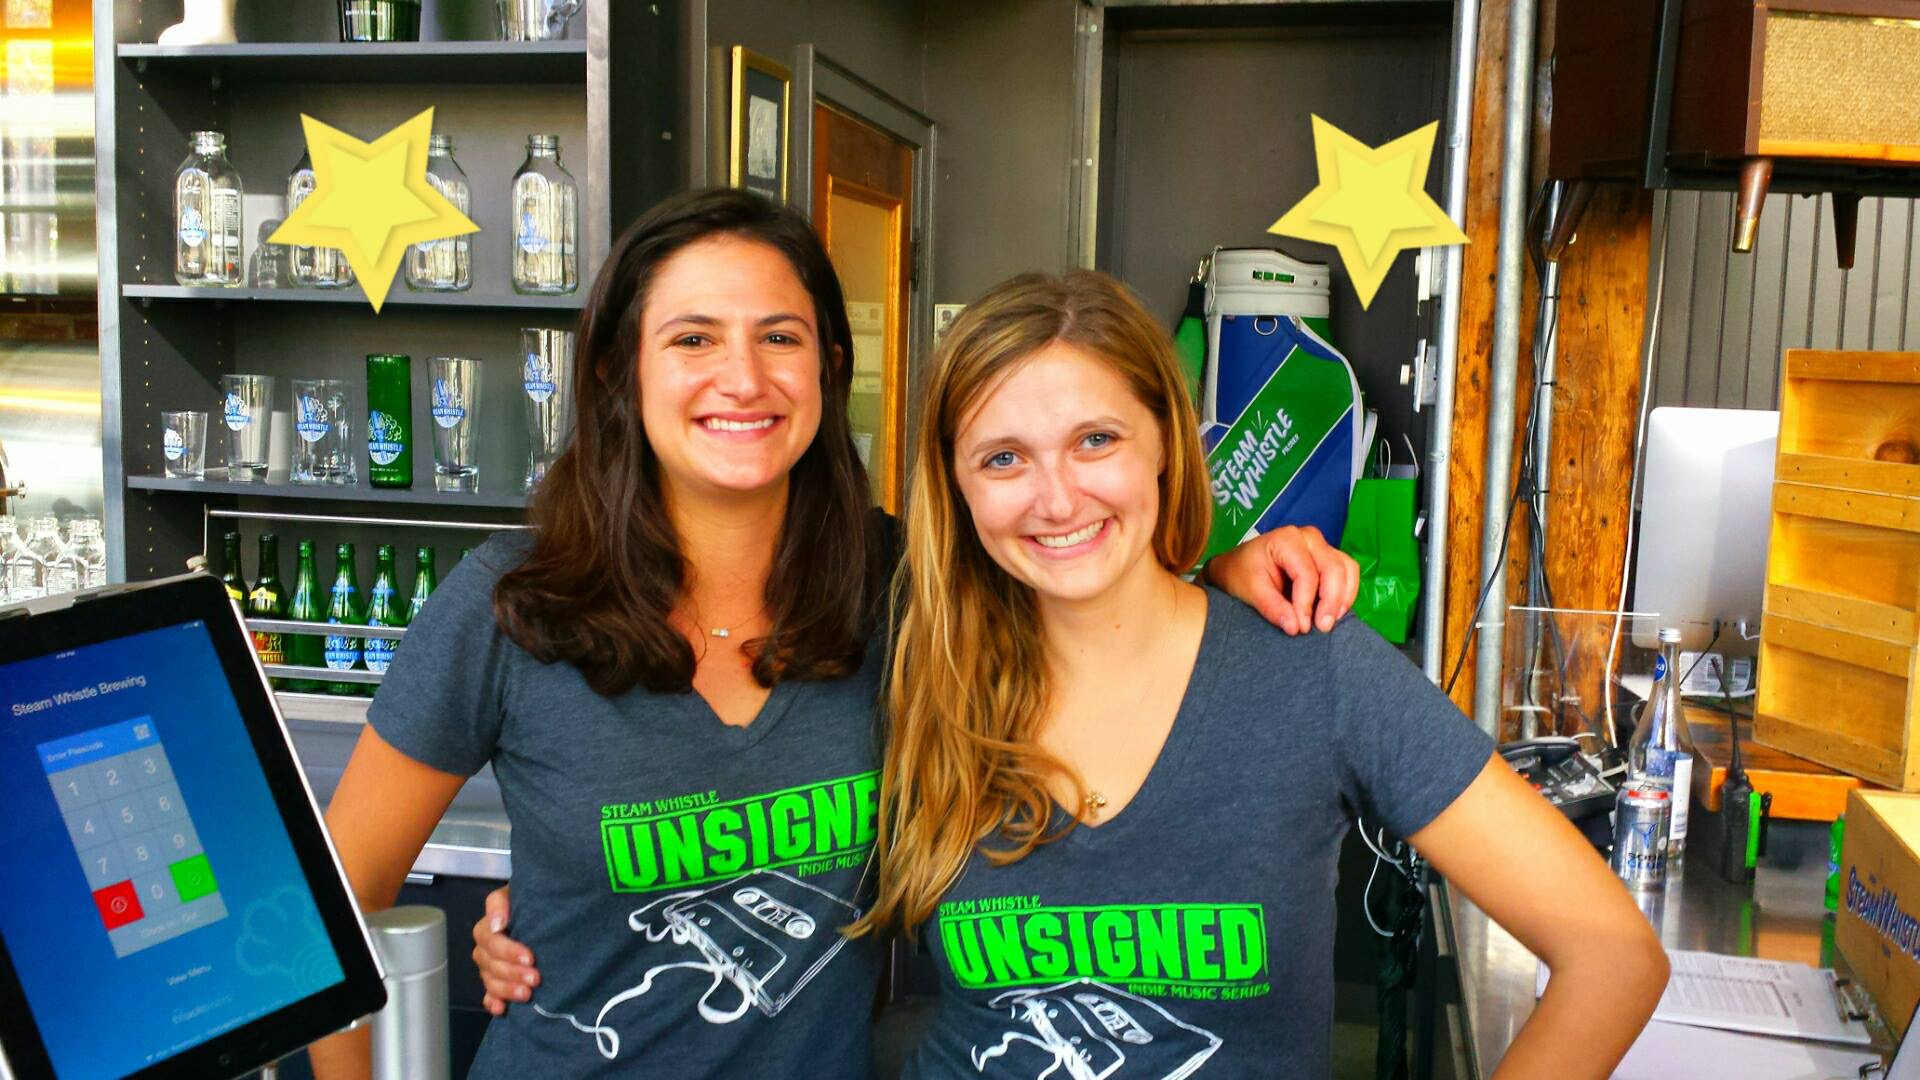 Whistle While You Work: The Steam Whistle Brewery Review | The